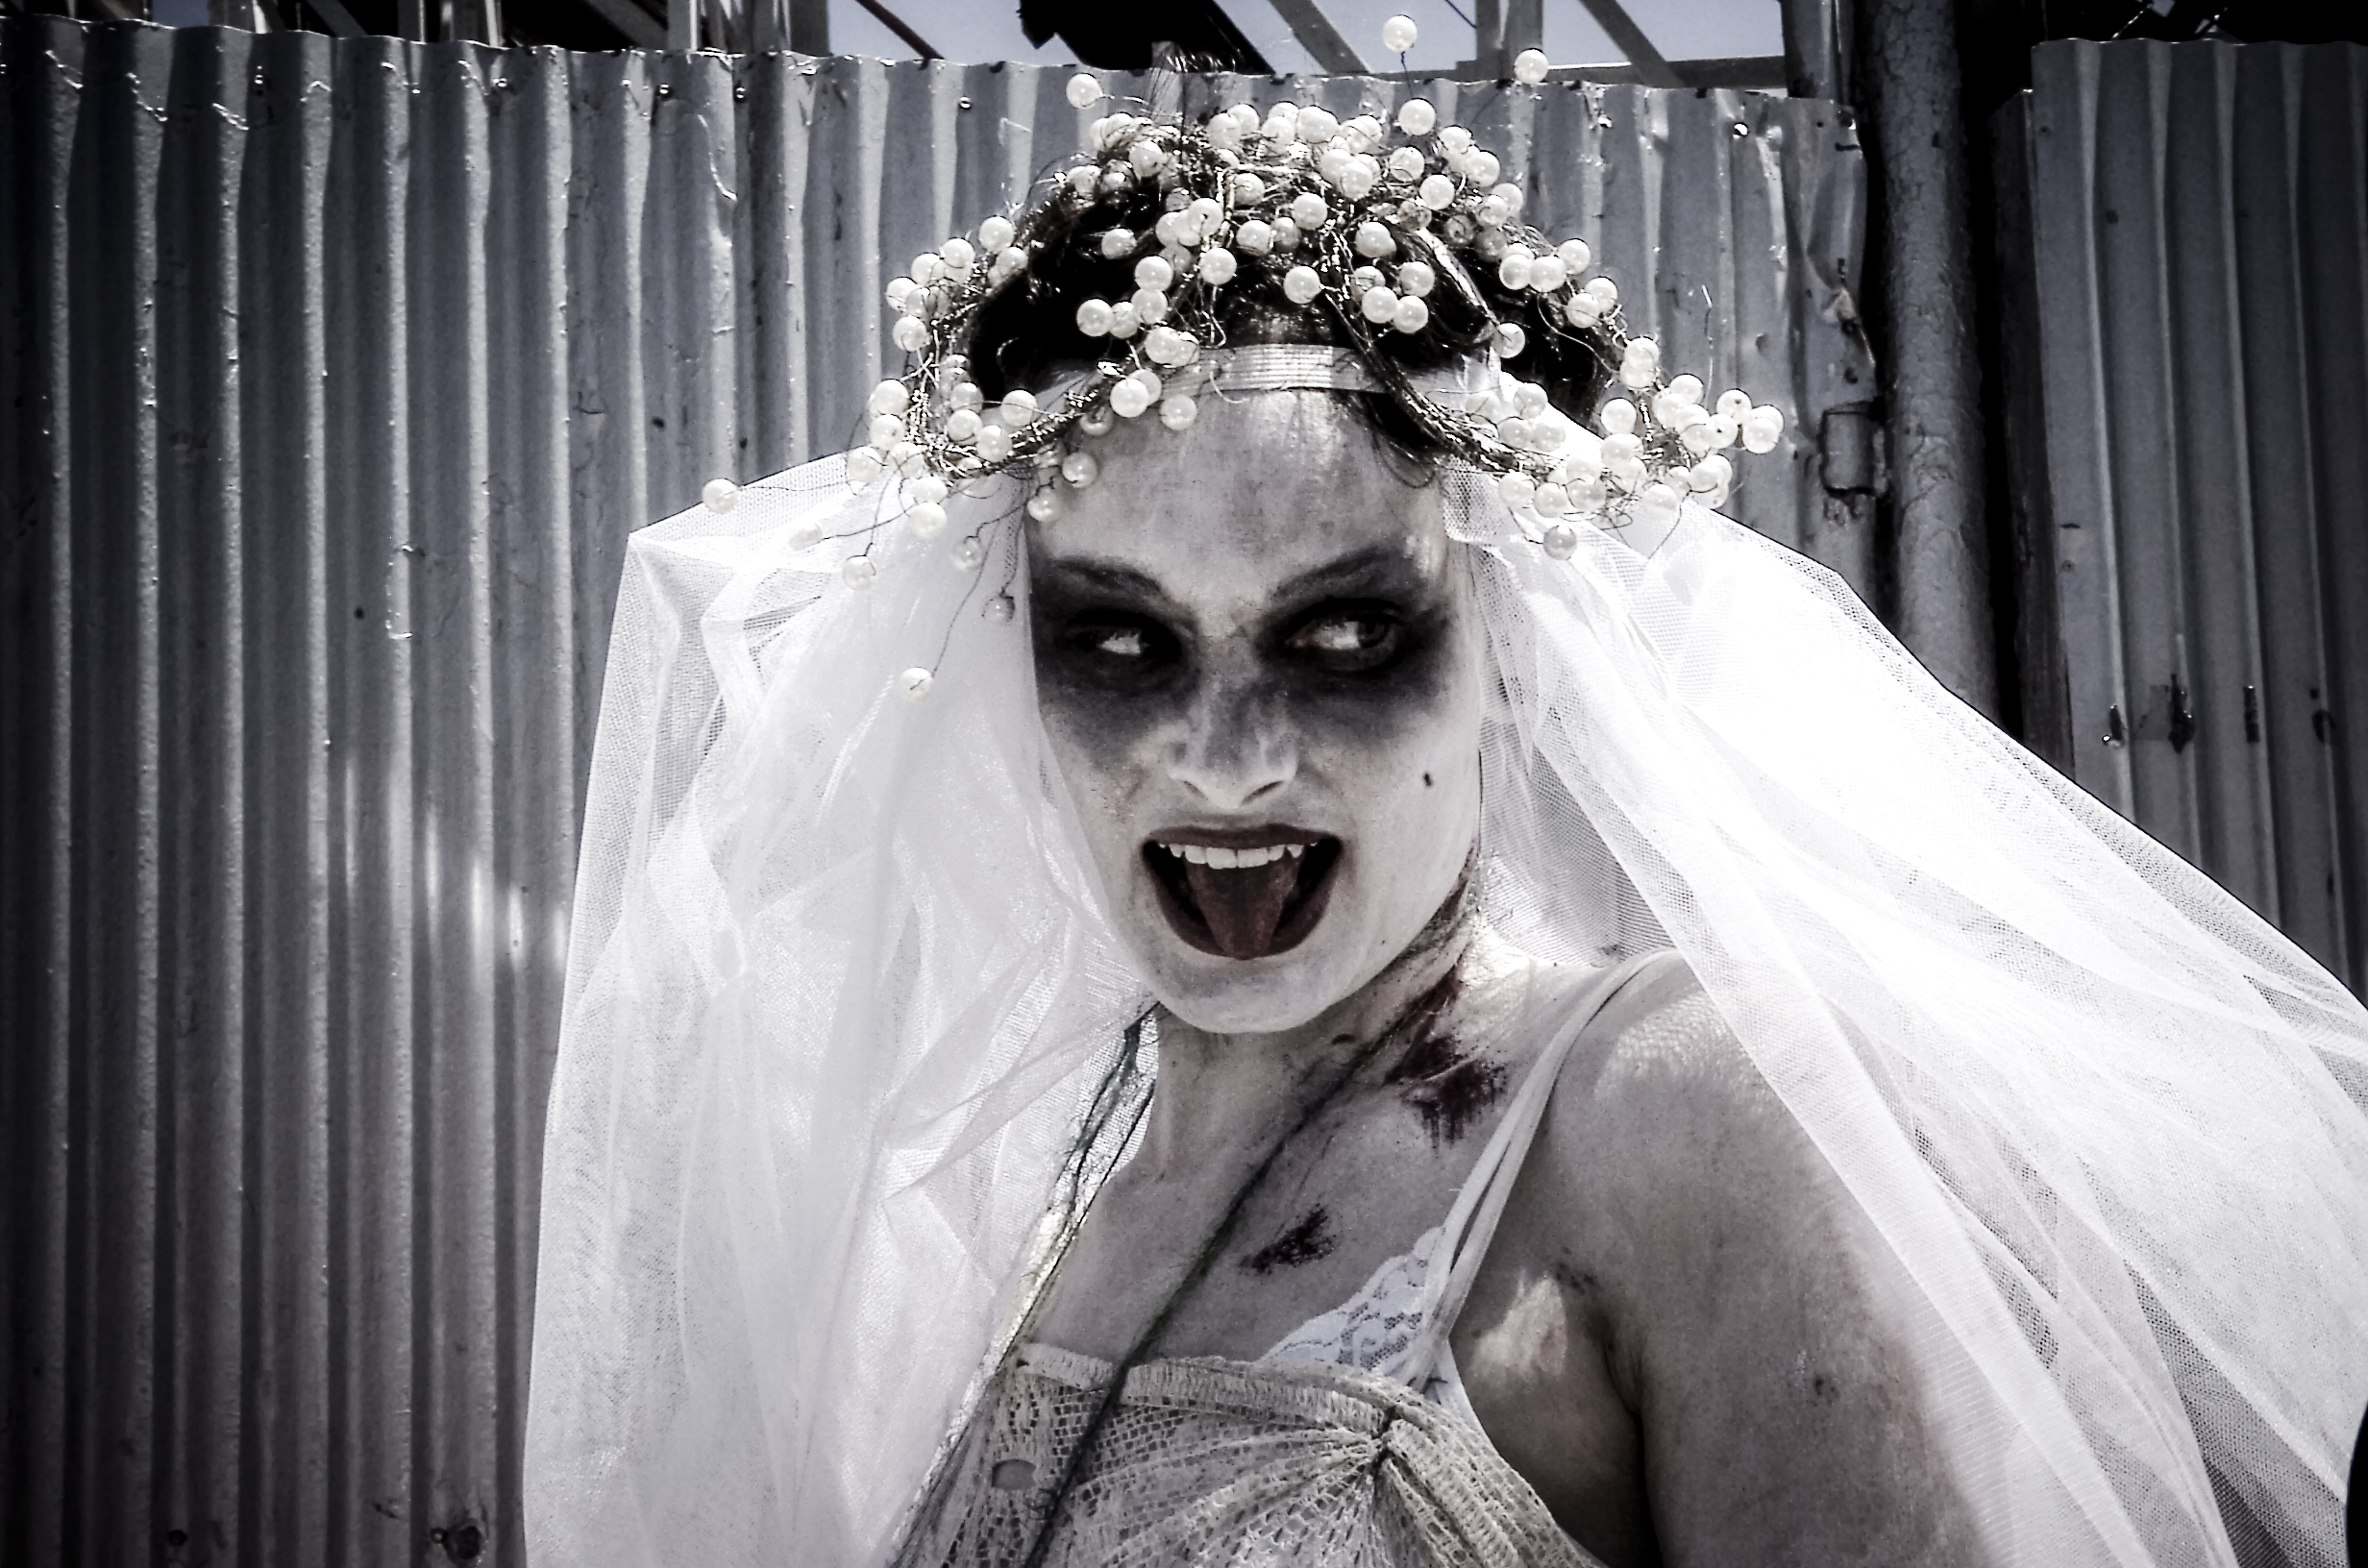 Dead Bride Coney Island Mermaid Parade, New York